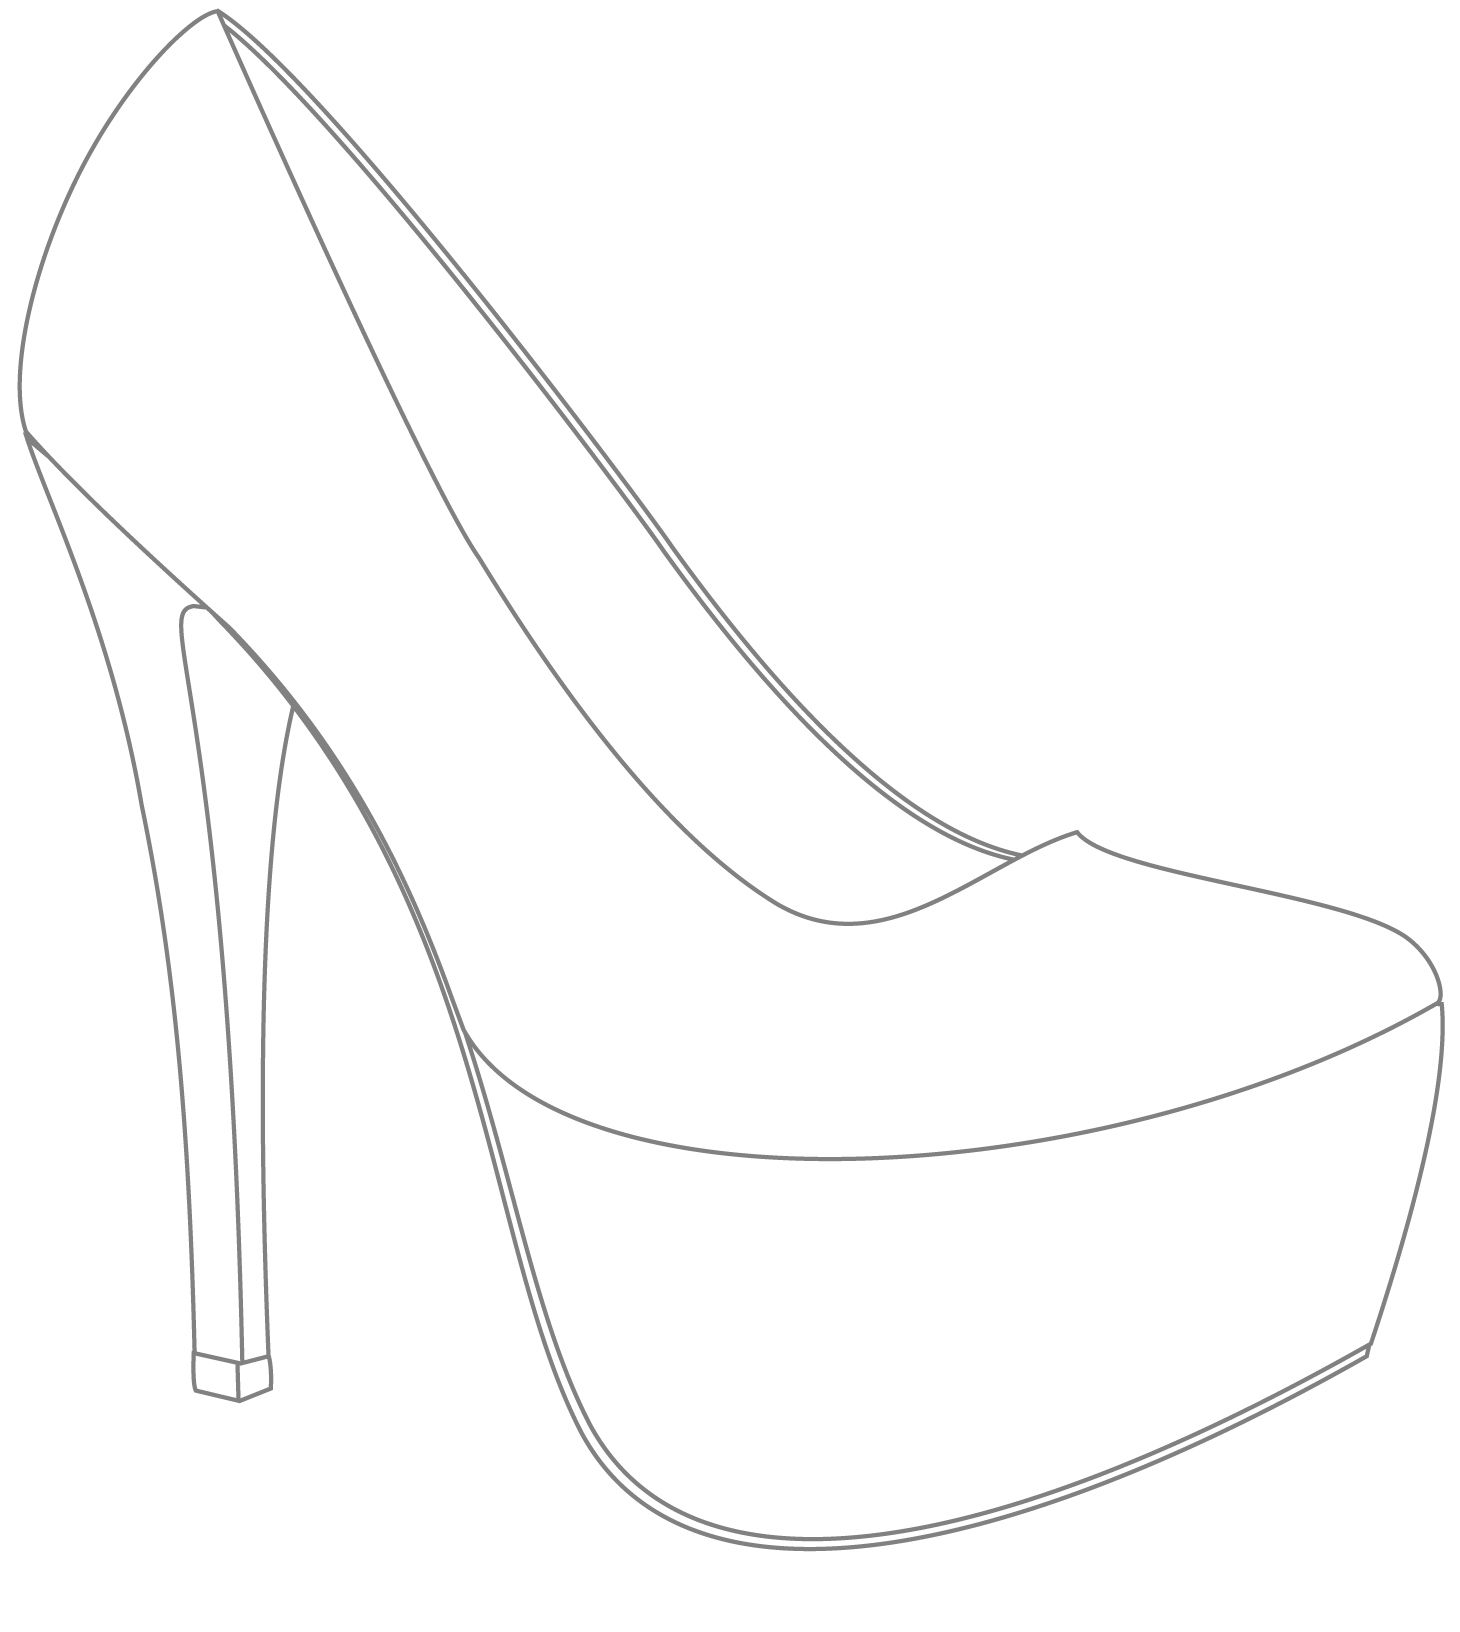 Preferred Shoe Drawing Template at GetDrawings.com | Free for personal use  MT24